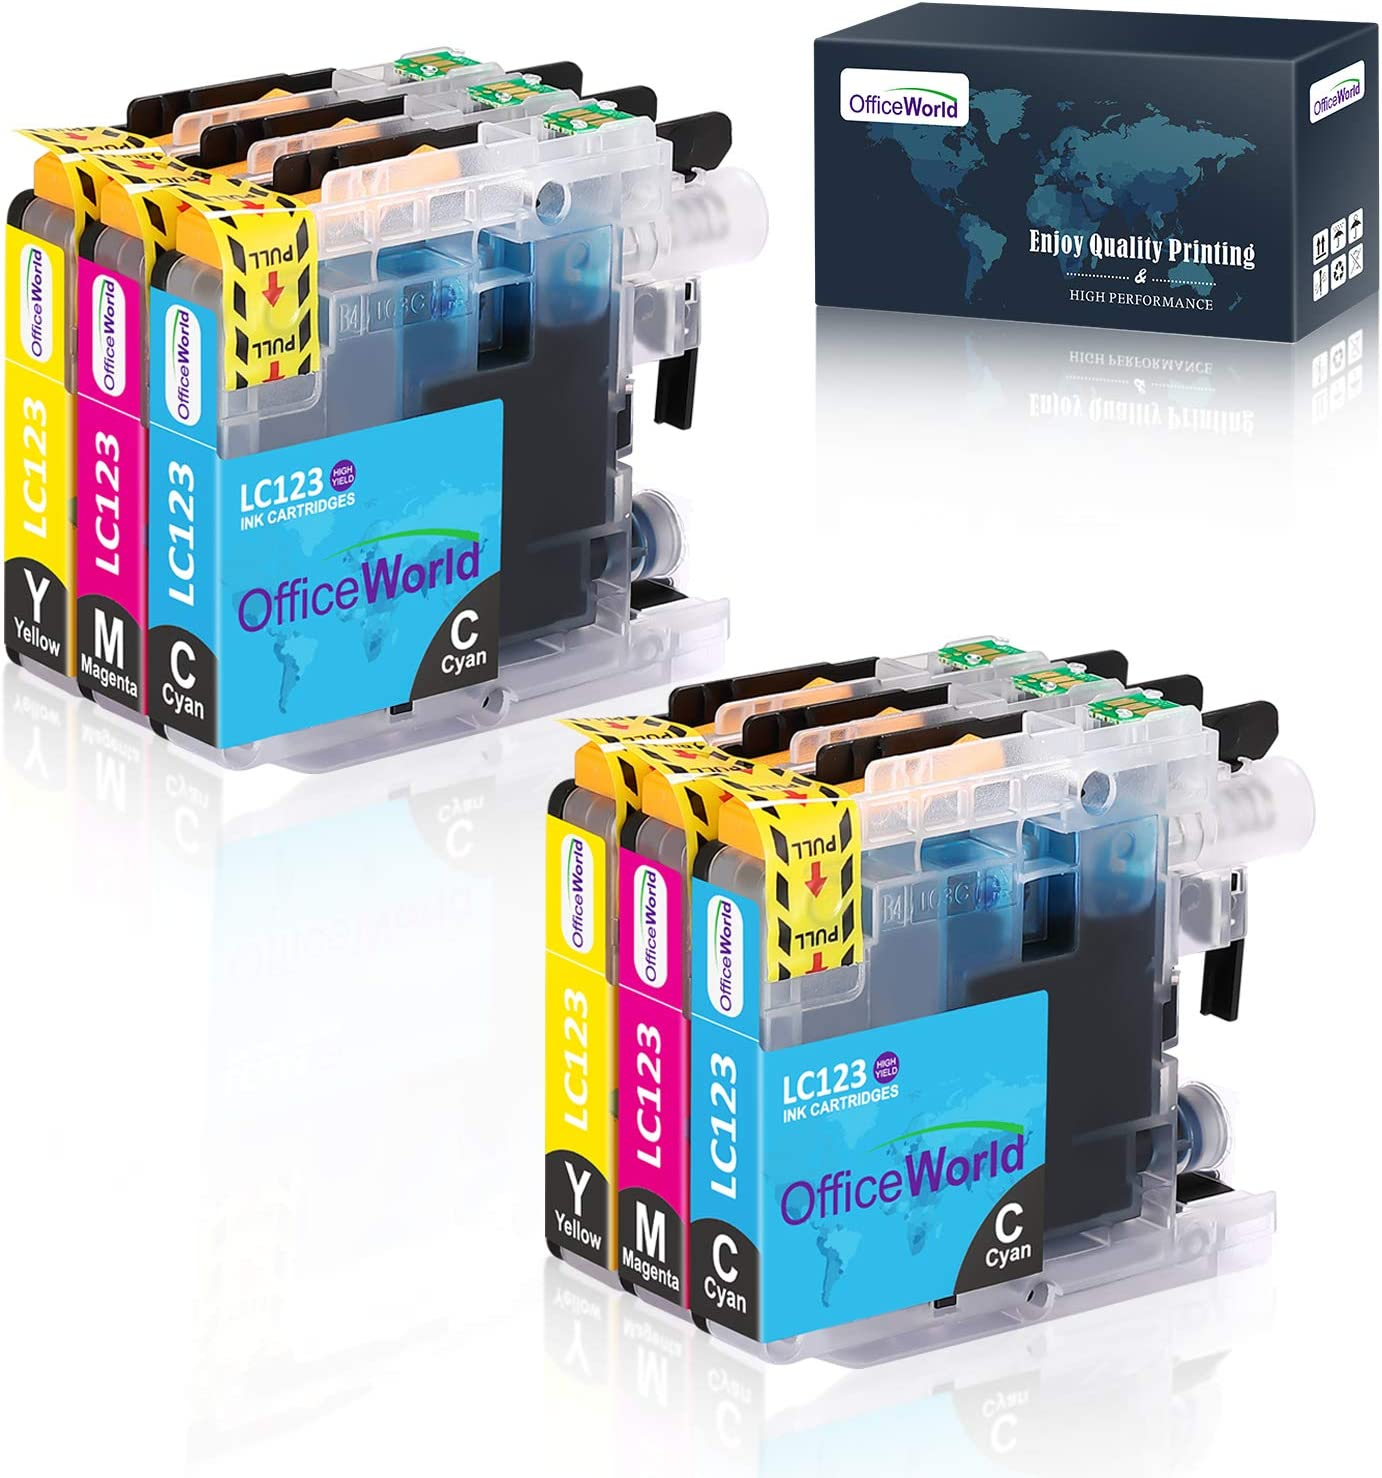 Officeworld Replacement For Brother Lc123 Cyan Magenta Yellow Printer Cartridges High Capacity Compatible With Brother Mfc J6520dw Dcp J4110dw Mfc J4410dw Mfc J470dw Mfc J870dw Dcp J132w Mfc J4510dw Amazon De